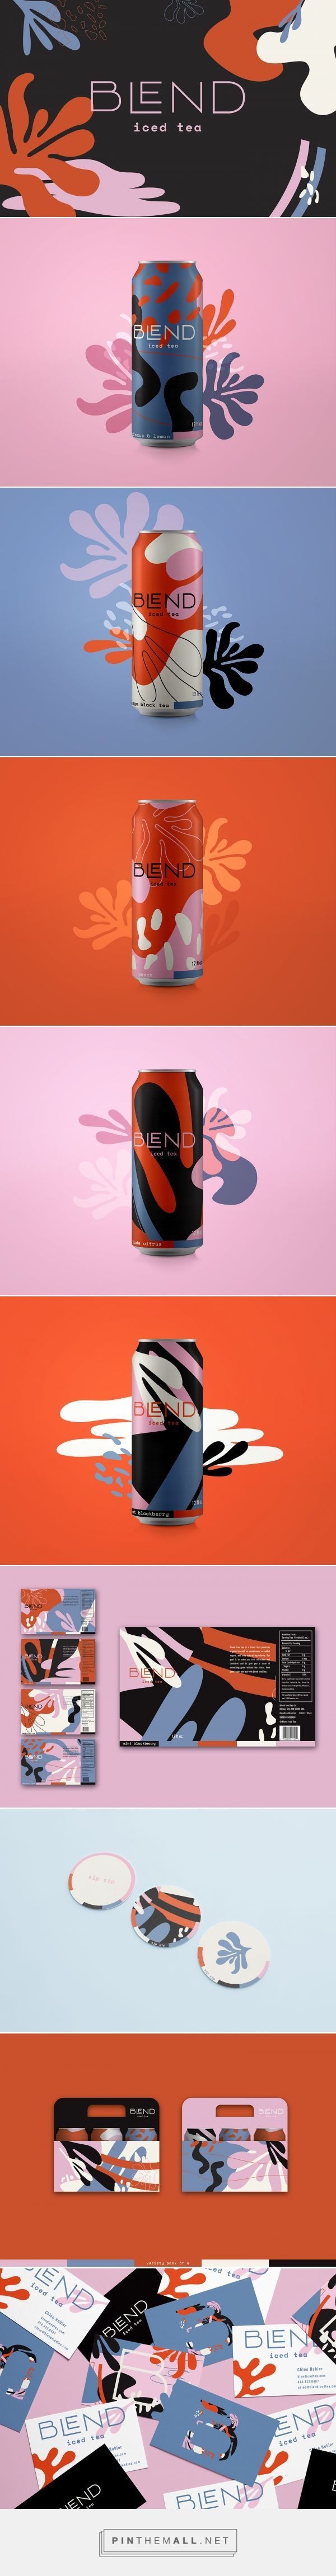 Blend Iced Tea Branding and Packaging by Chloe Hubler | Fivestar Branding Agency – Design and Branding Agency & Curated Inspiration Gallery